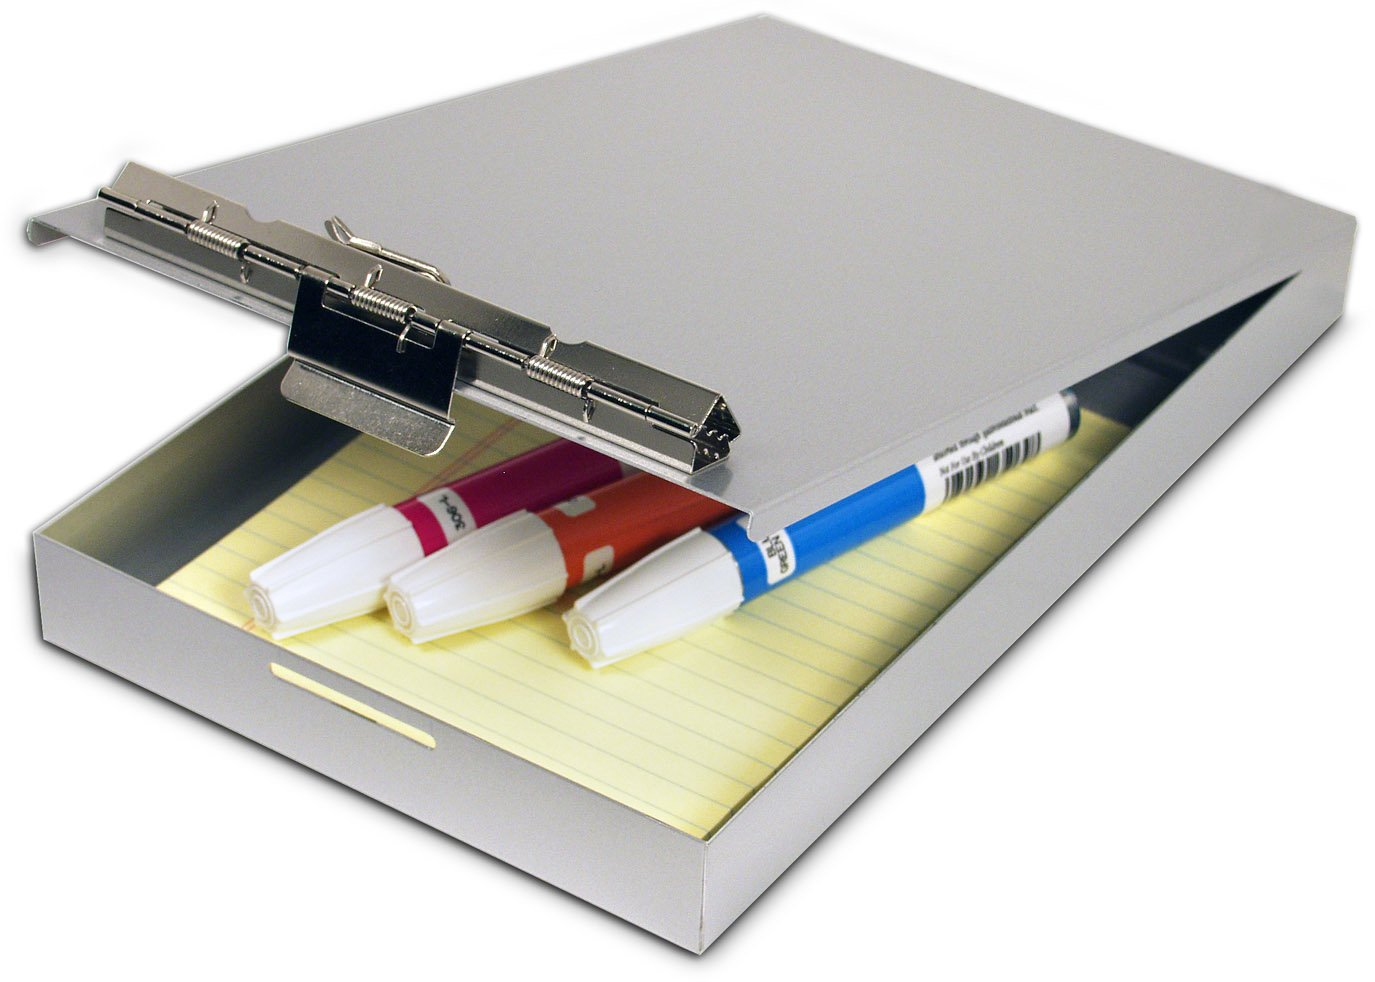 Amazon.com : Saunders Aluminum Redi Rite Storage Clipboard   Form Holder  With 1 Inch Storage Compartment, Self Locking Latch. Office Supplies :  Metal ...